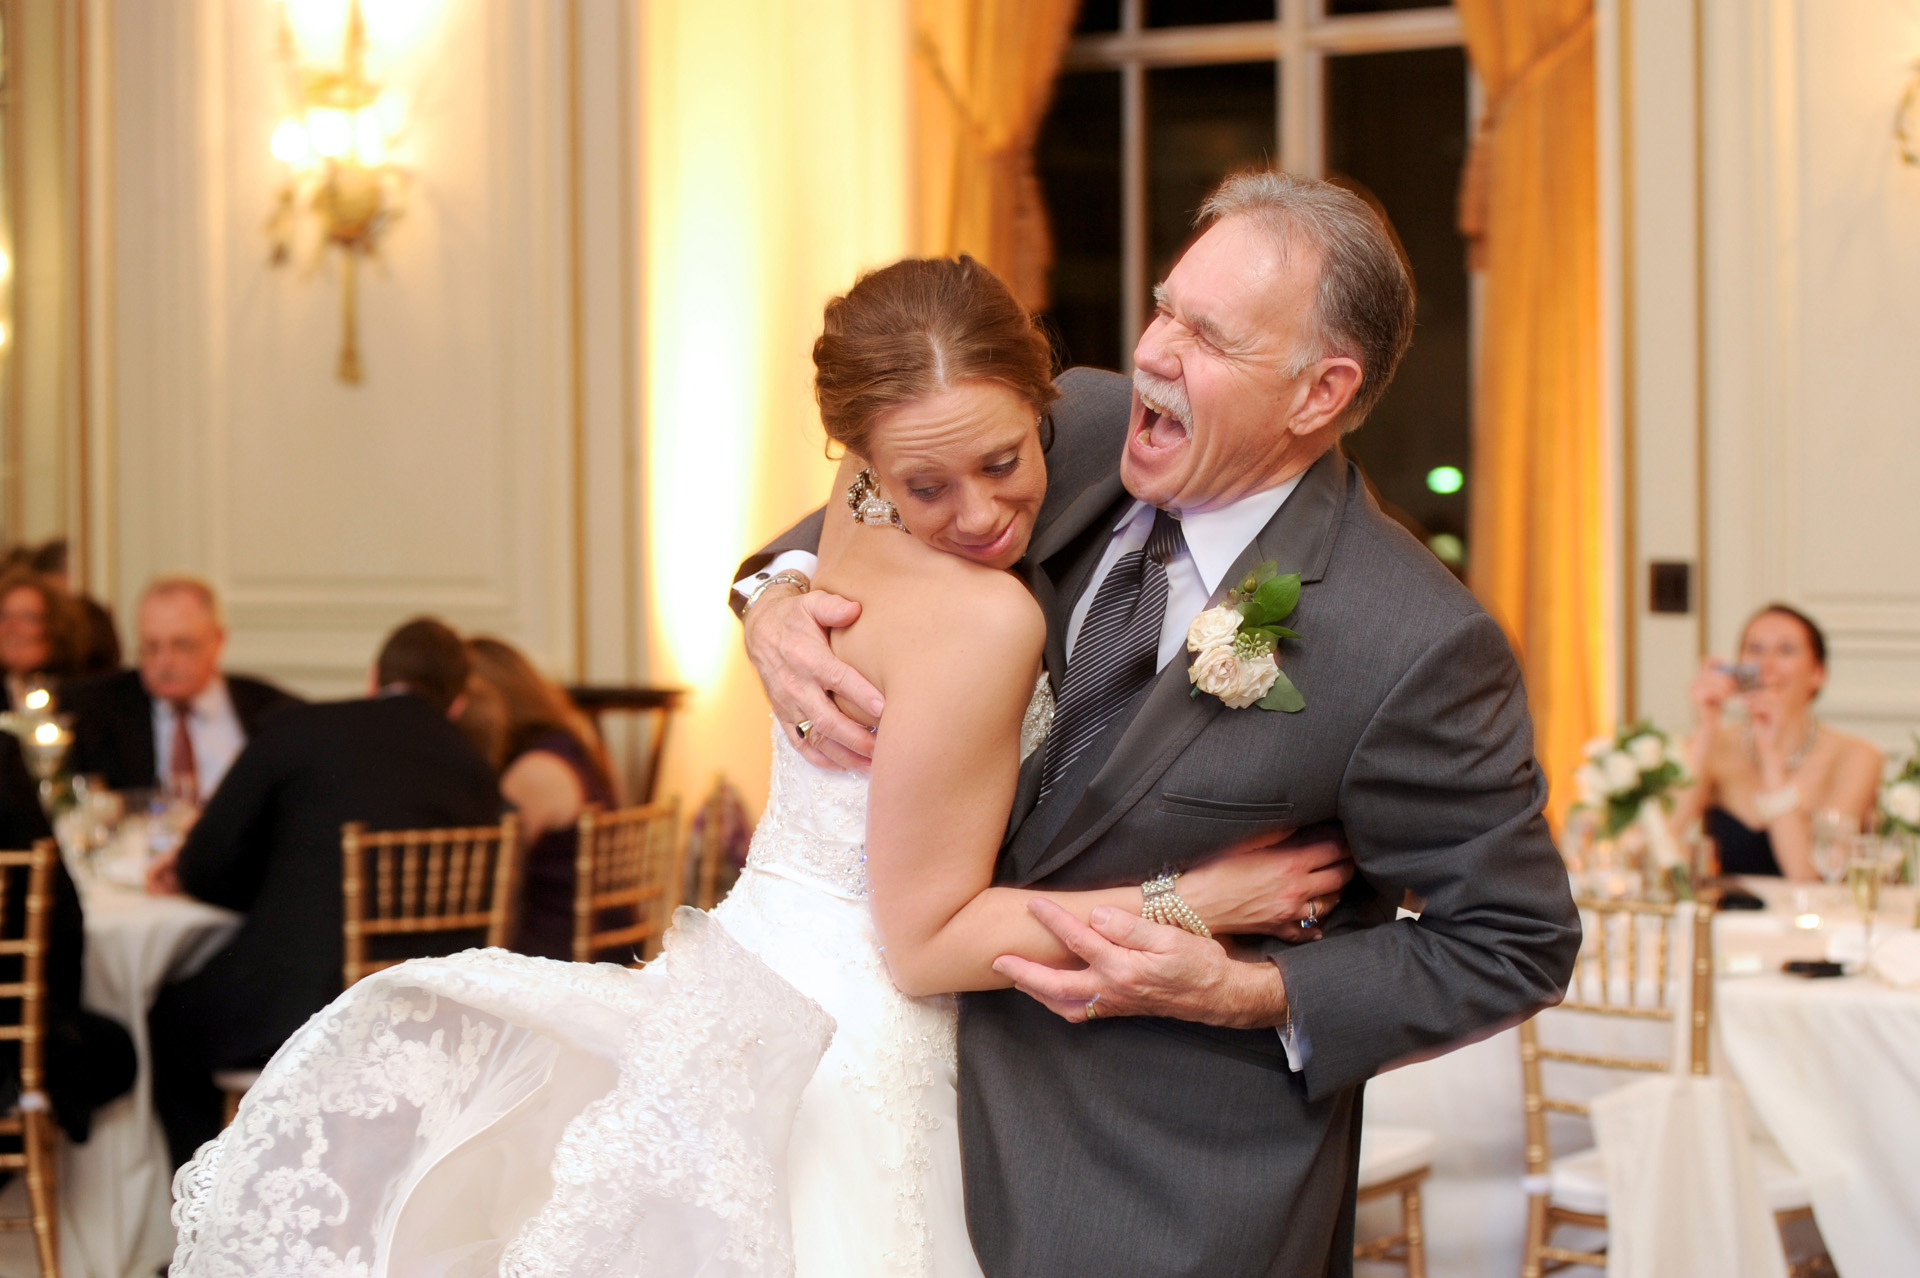 Colony Club wedding photographer's photo of Mindy and her father goof around during their father/daughter dance during the wedding reception at the Colony Club in Detroit, Michigan.